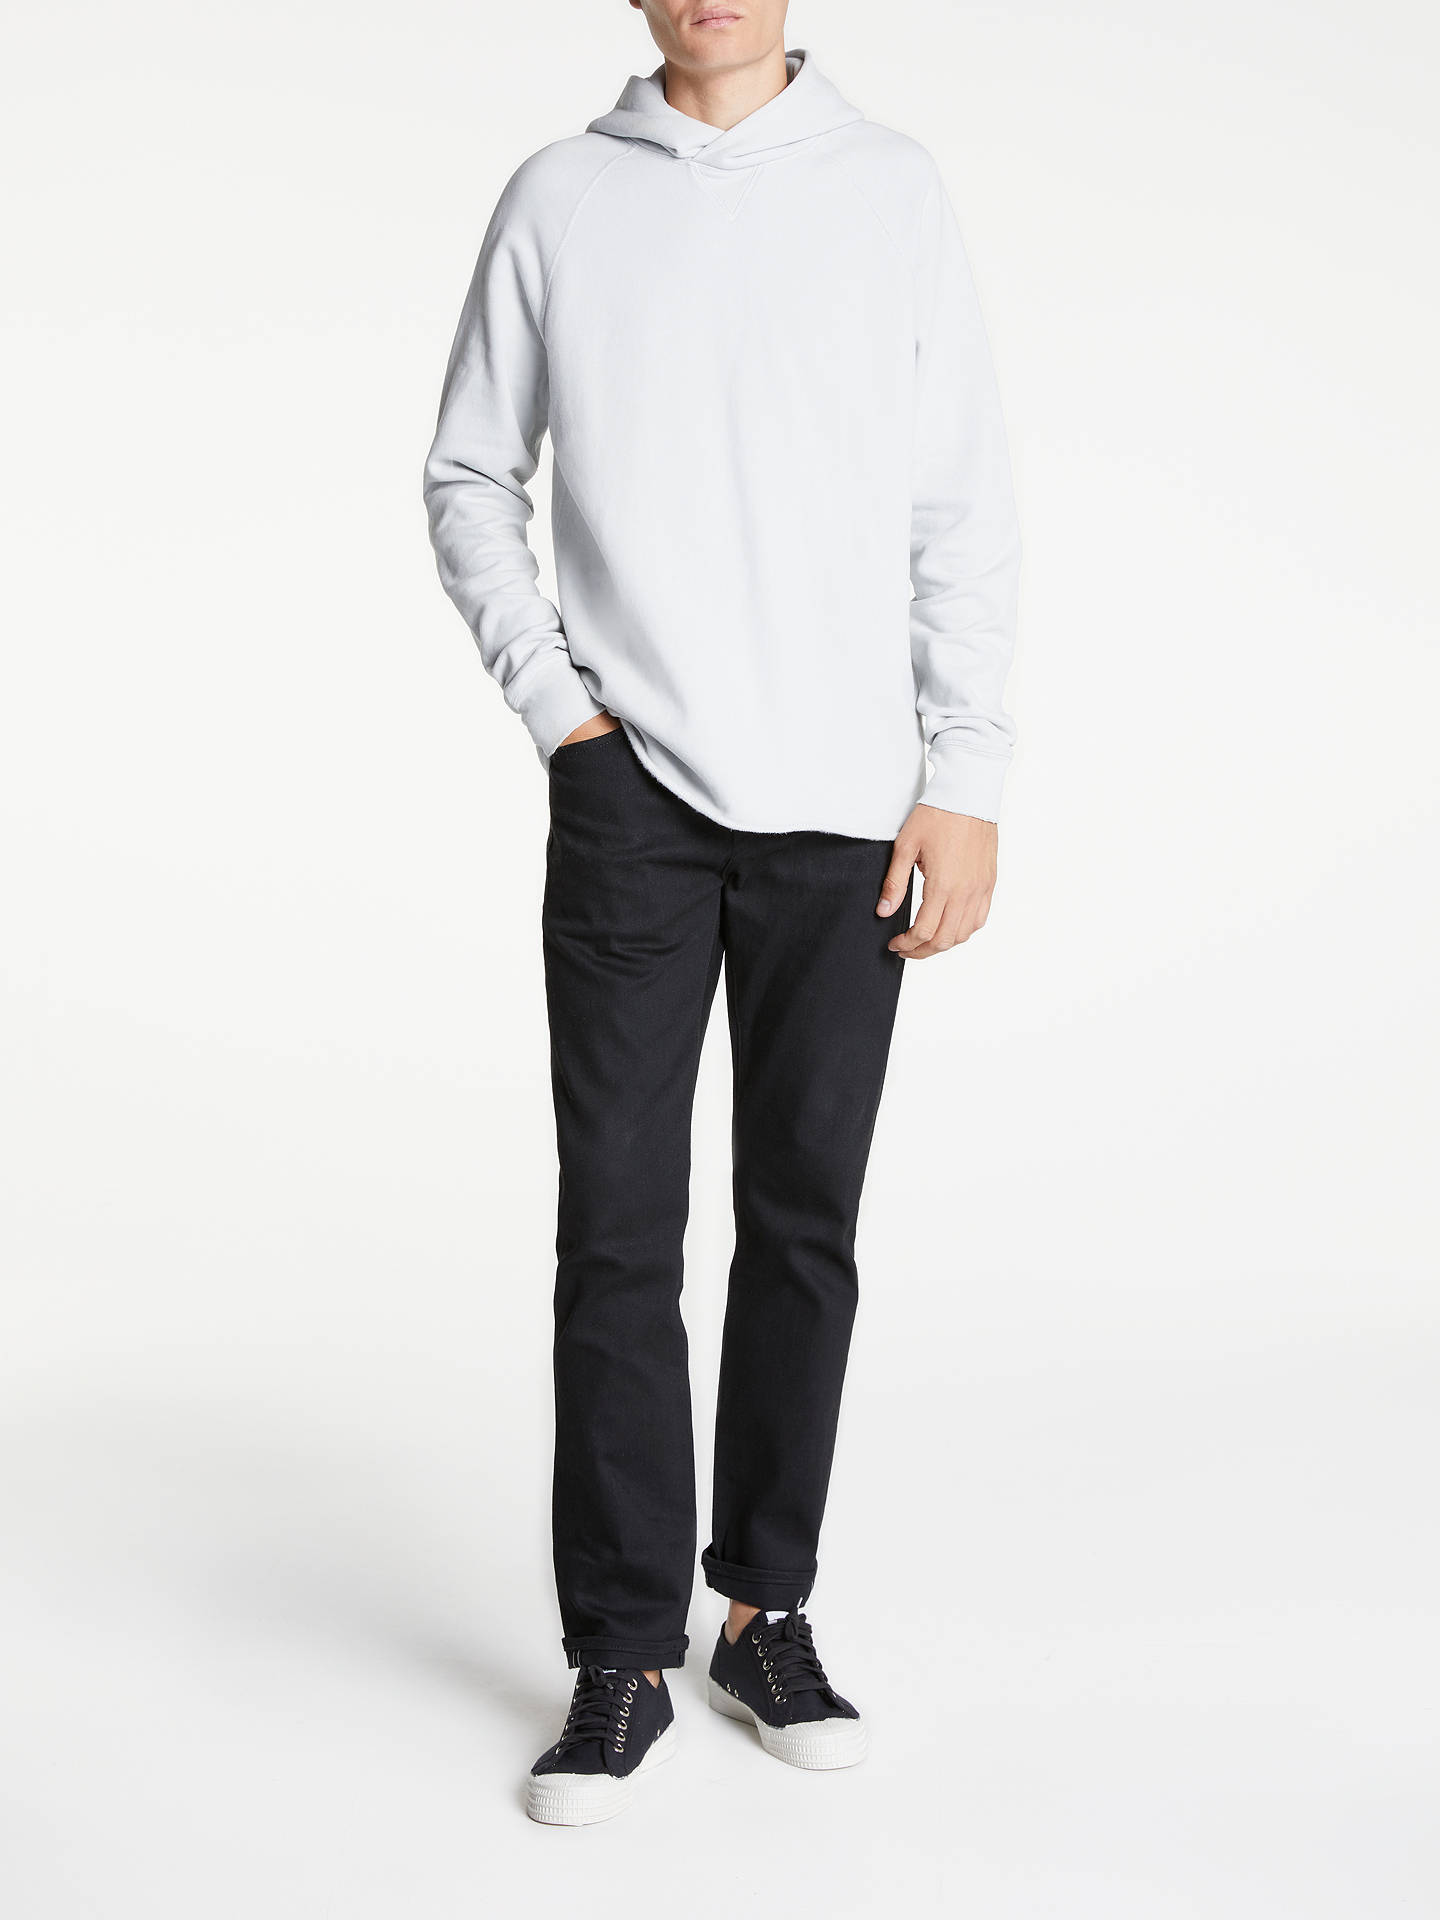 5bfeab6cb2 ... Buy Levi s Made   Crafted Unhemmed Hoodie Top